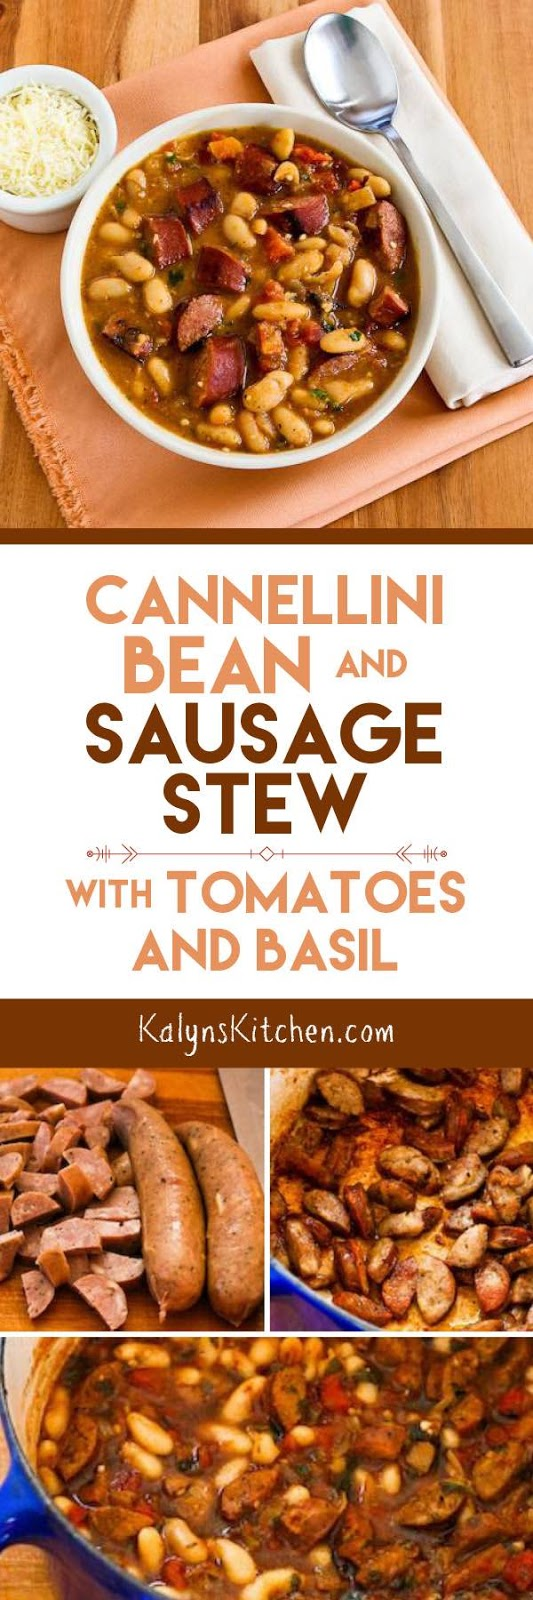 ... Kitchen®: Cannellini Bean and Sausage Stew with Tomatoes and Basil